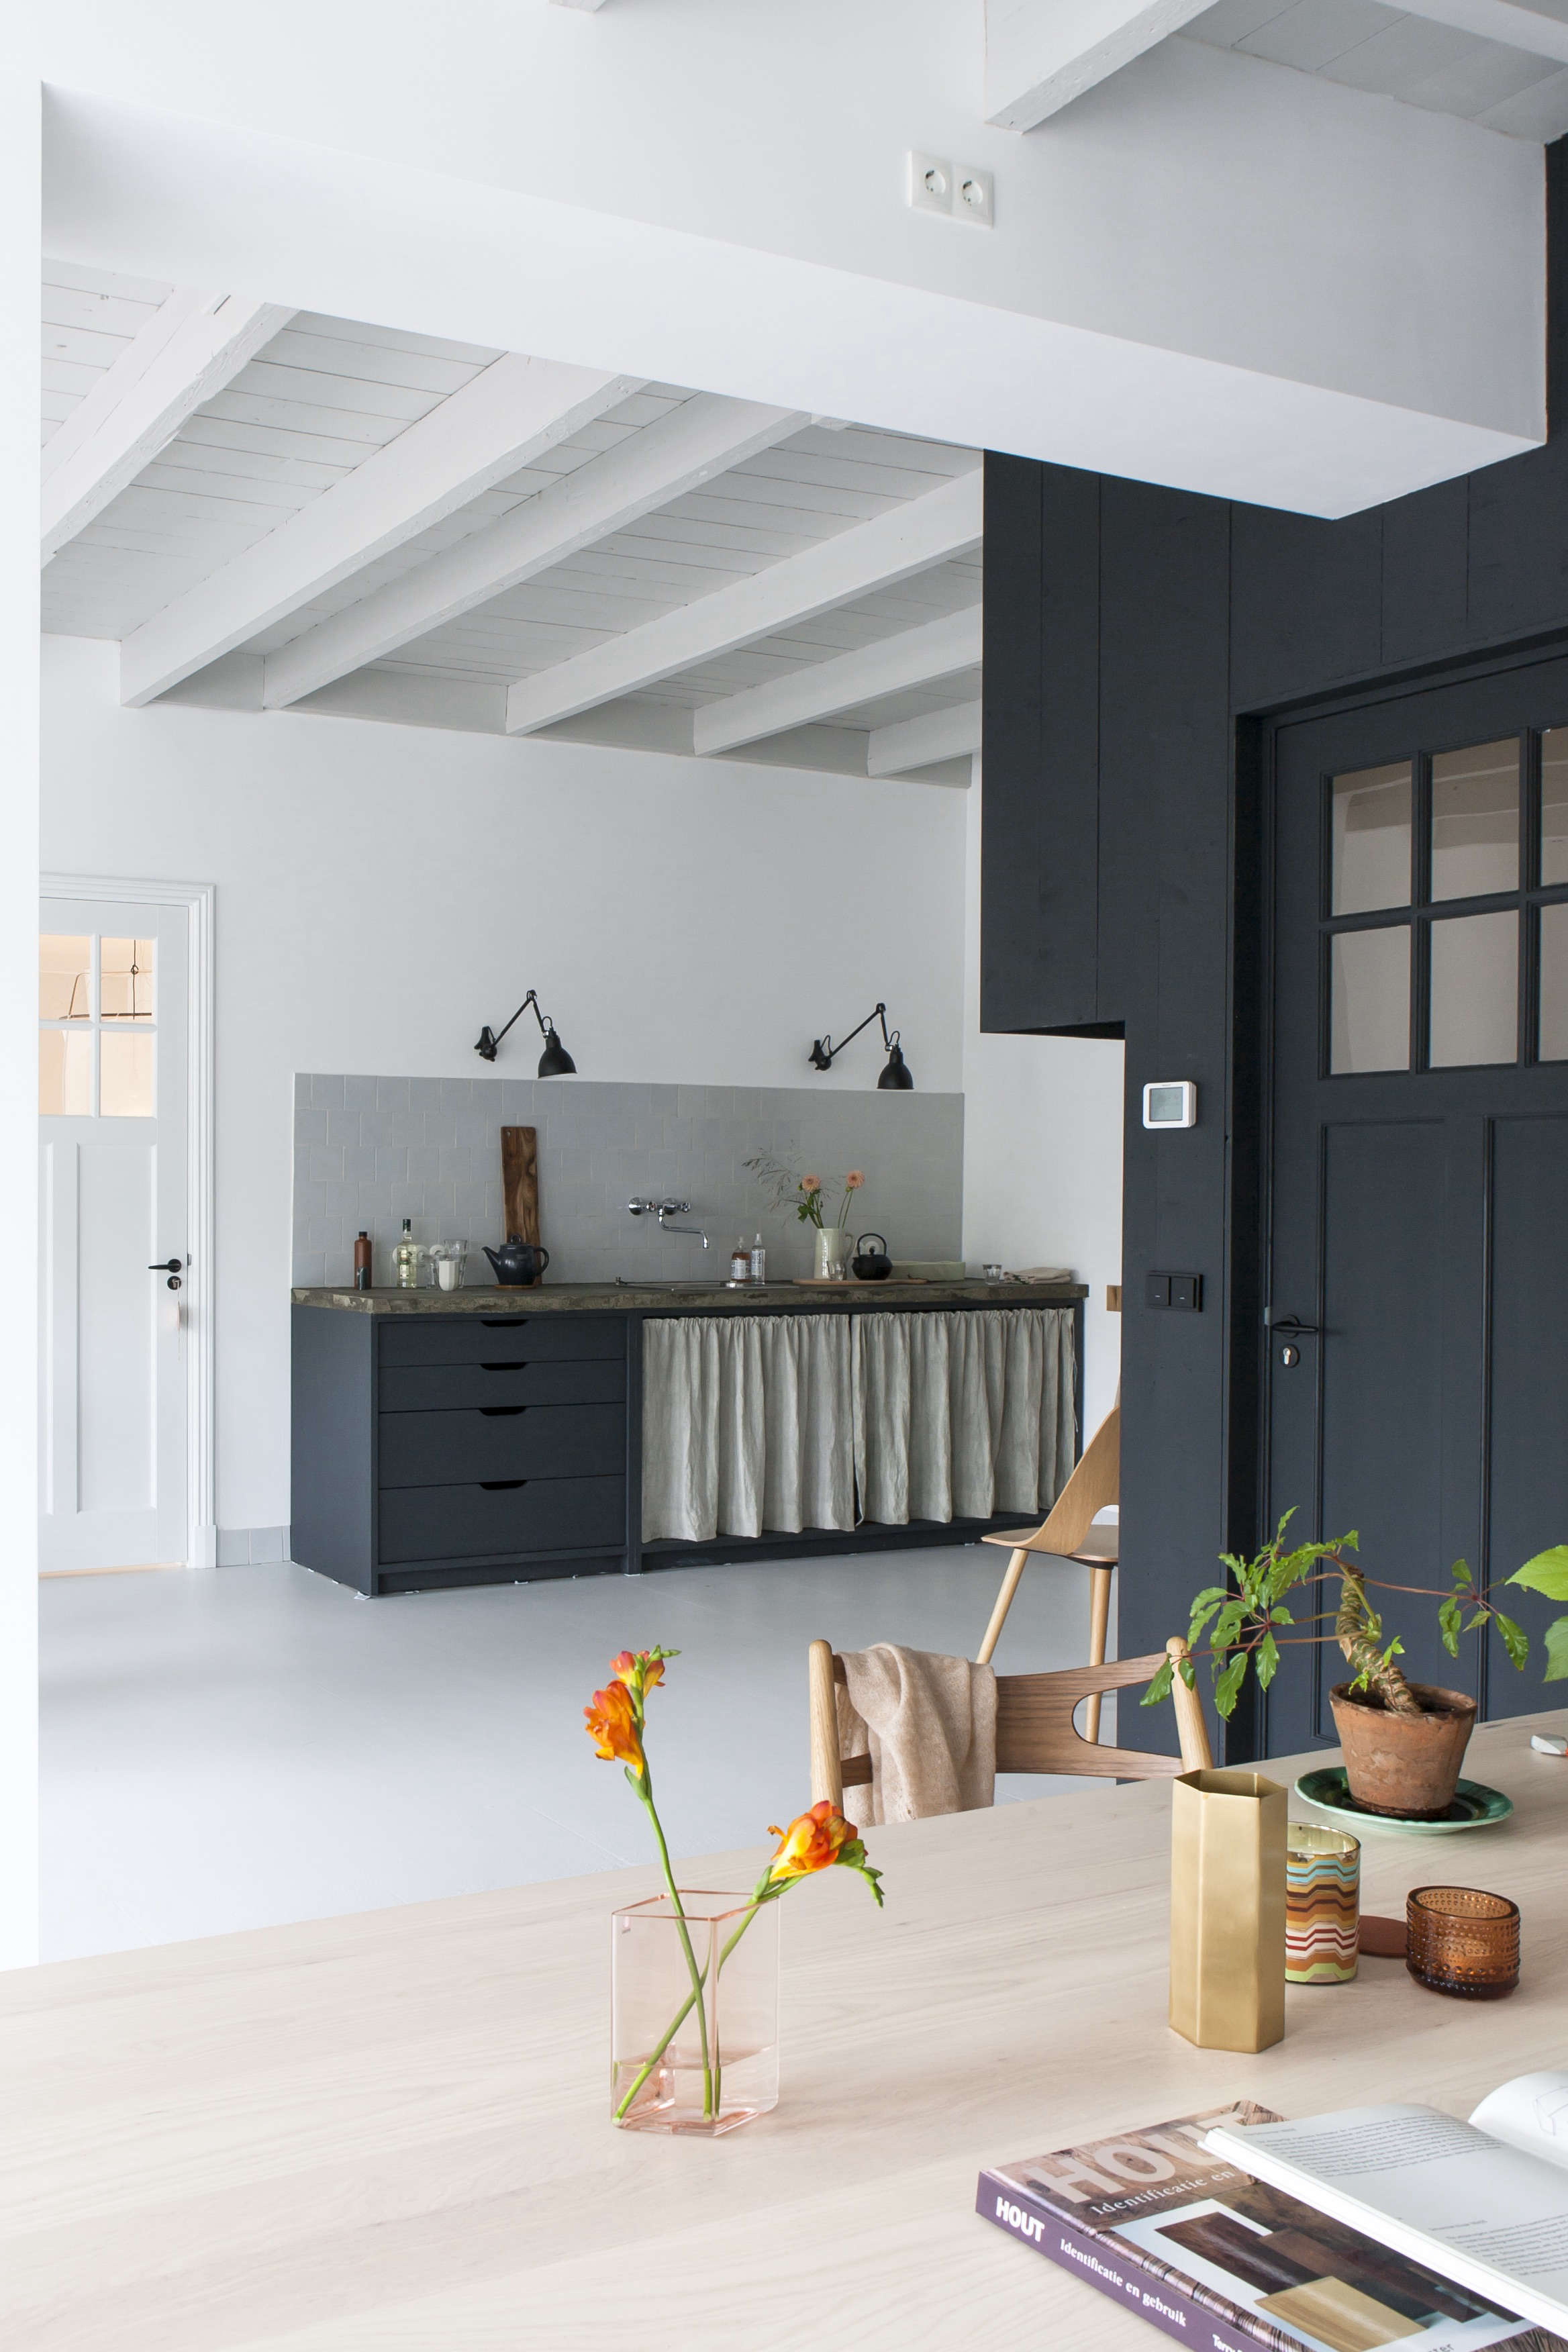 #856E4623522100 Kitchen Of The Week: The Curtained Kitchen Dutch Modern Edition  Meest recente 2e Hands Design Meubels Friesland 691 pic 23363504691 Ontwerp